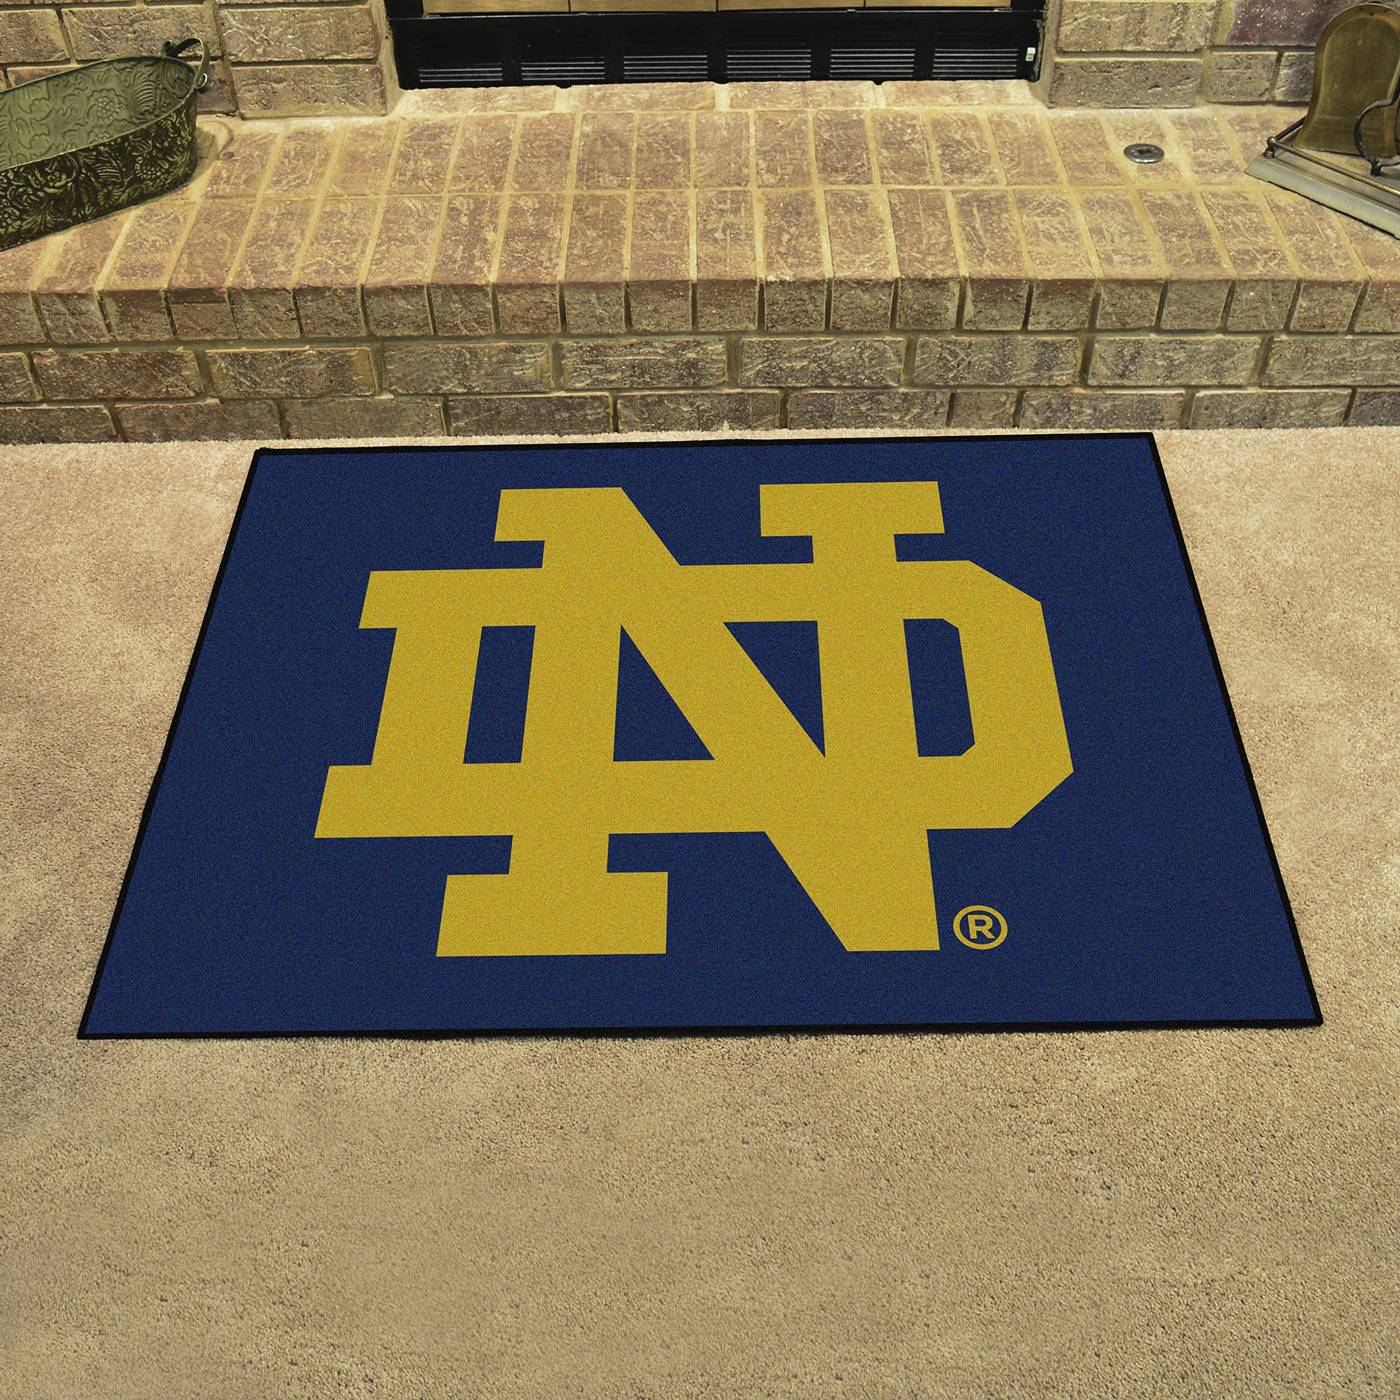 Notre Dame Fighting Irish Quot Nd Quot All Star Mat